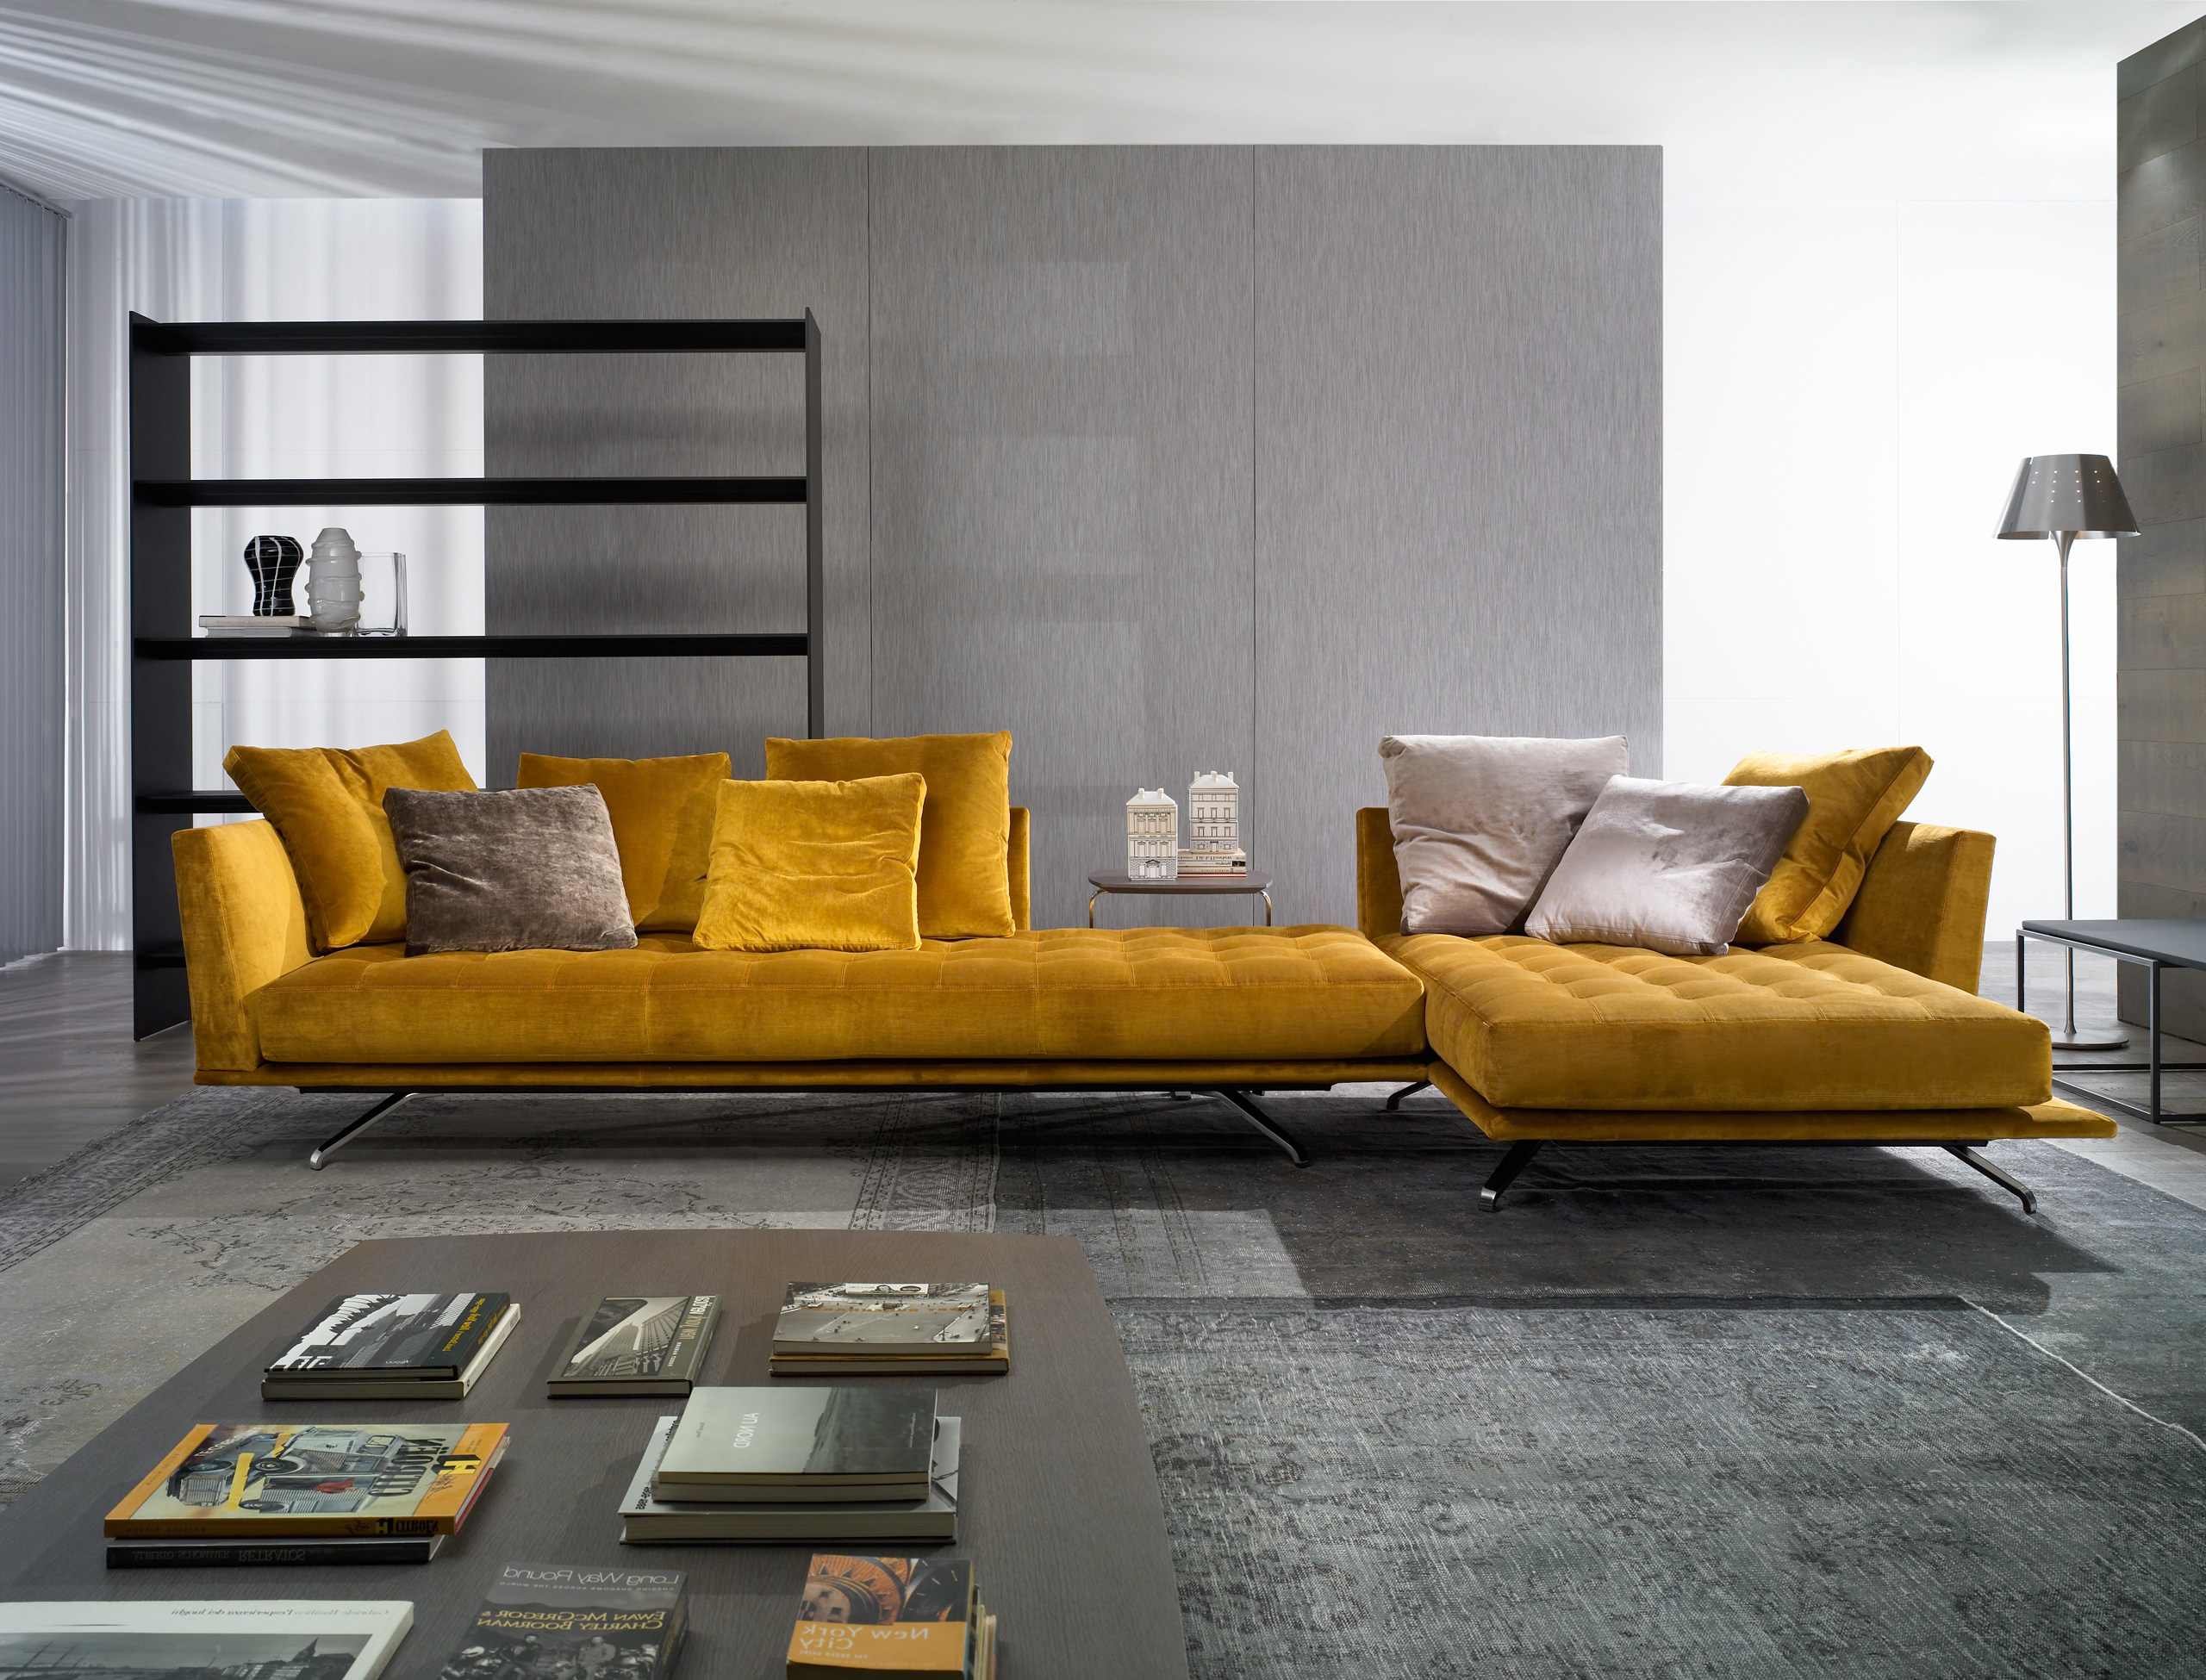 Sofas Mallorca U3dh Casadesus Mallorca Casadesus Furniture the why Factory